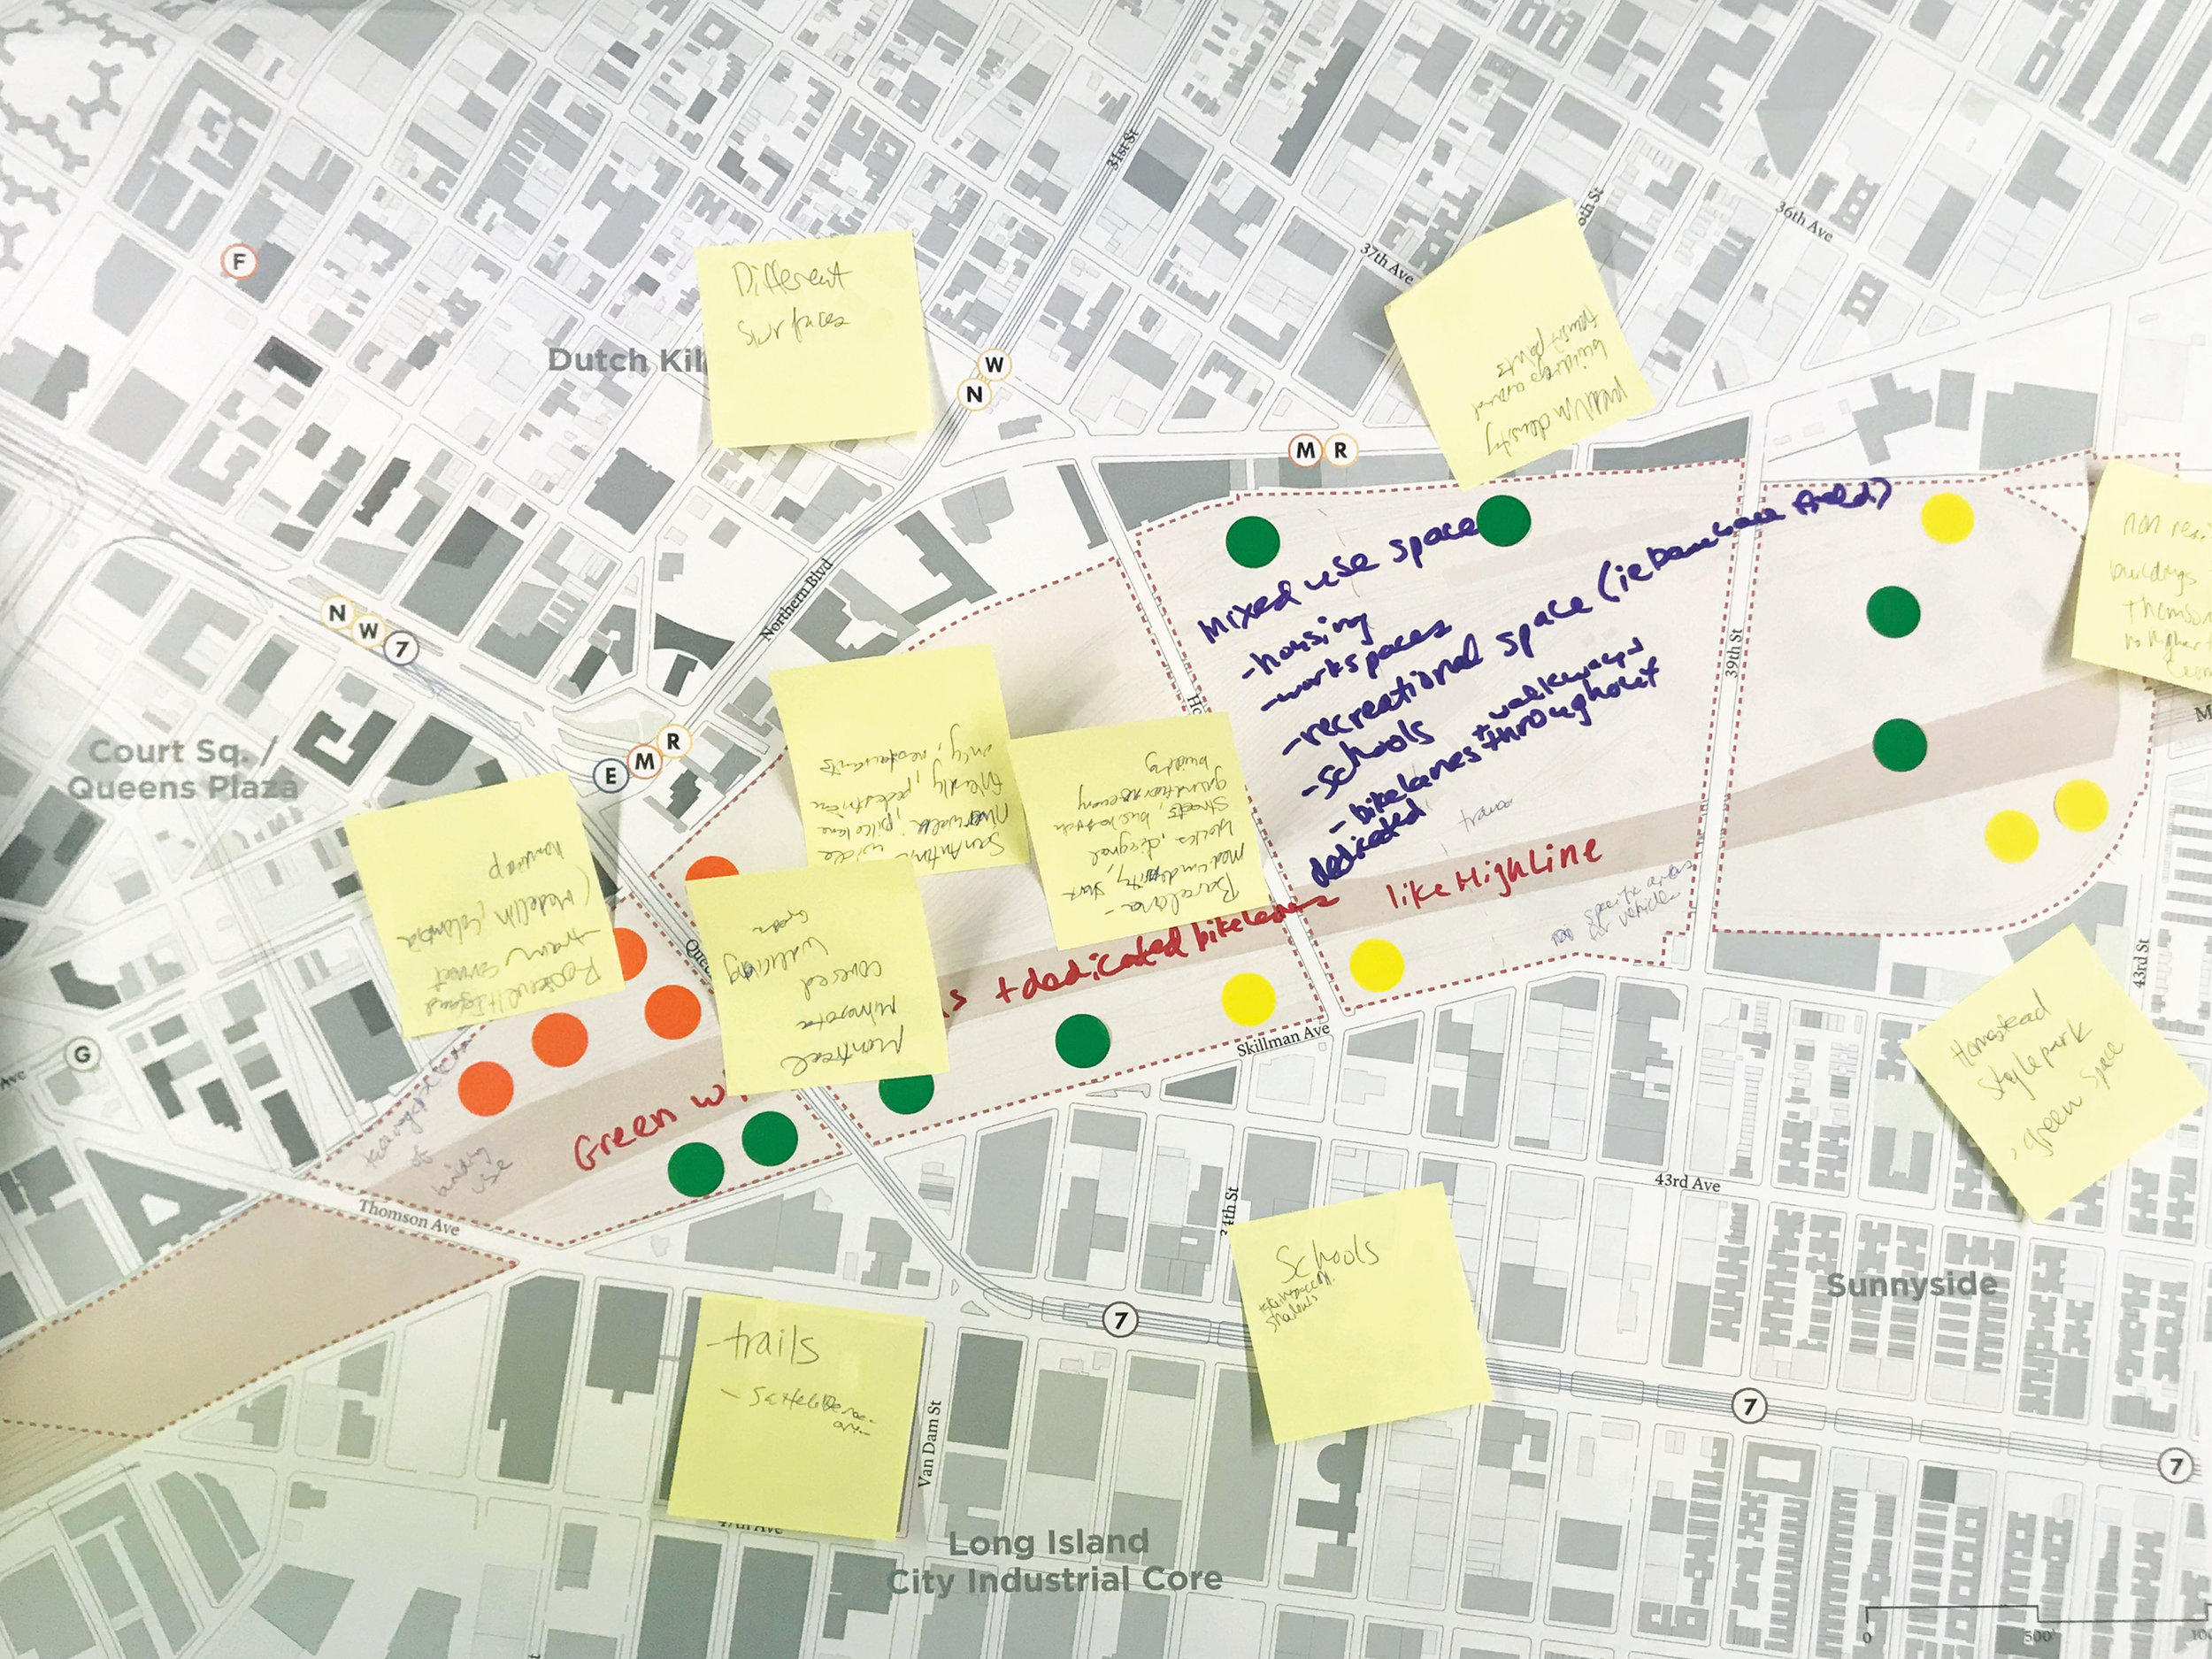 SSY_Public Workshop Findings Summary Urban Design Map4.jpg